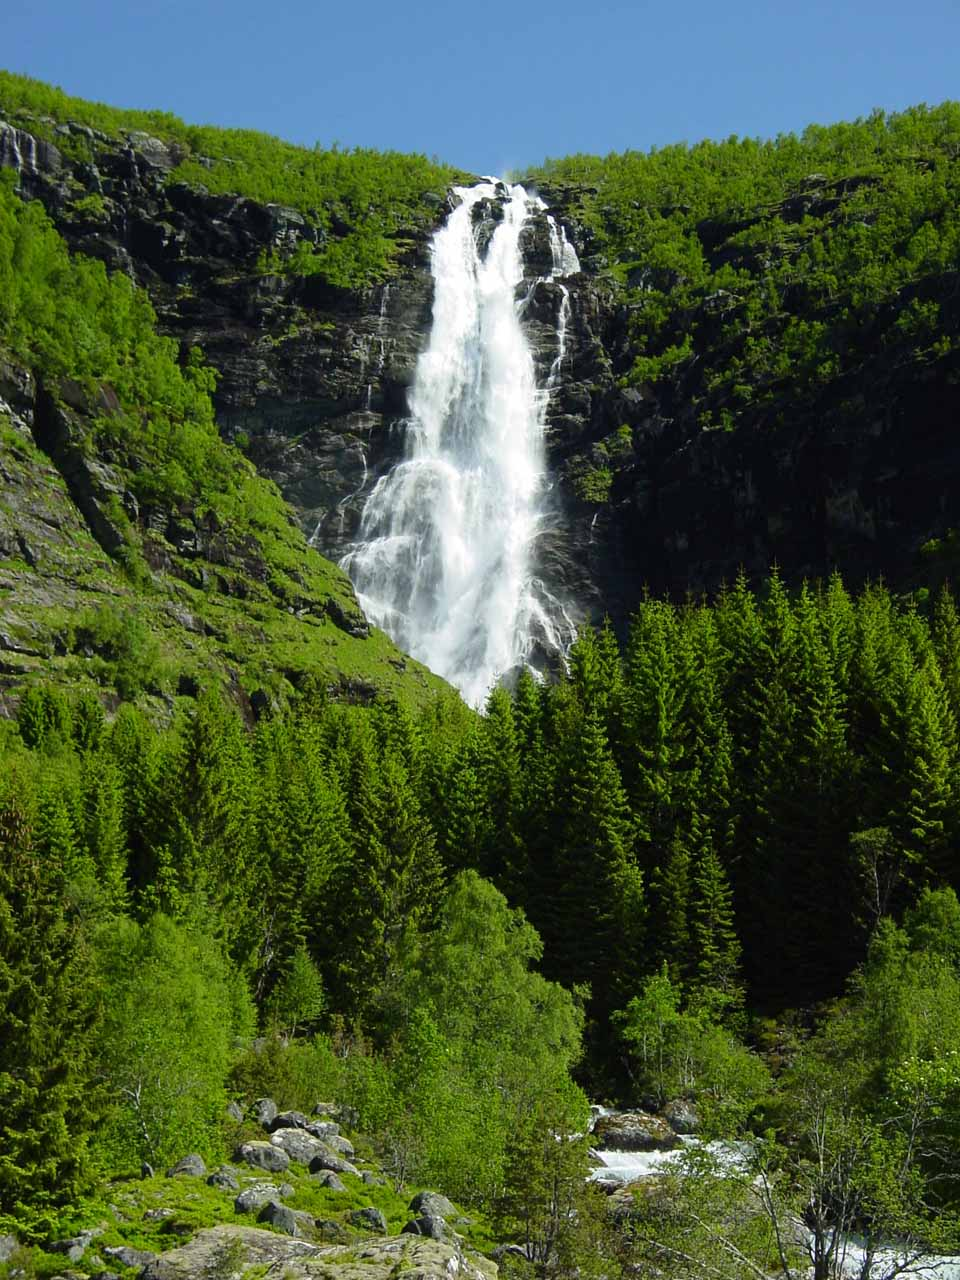 An even more zoomed in look at Sanddalsfossen from as far as we could get from the property